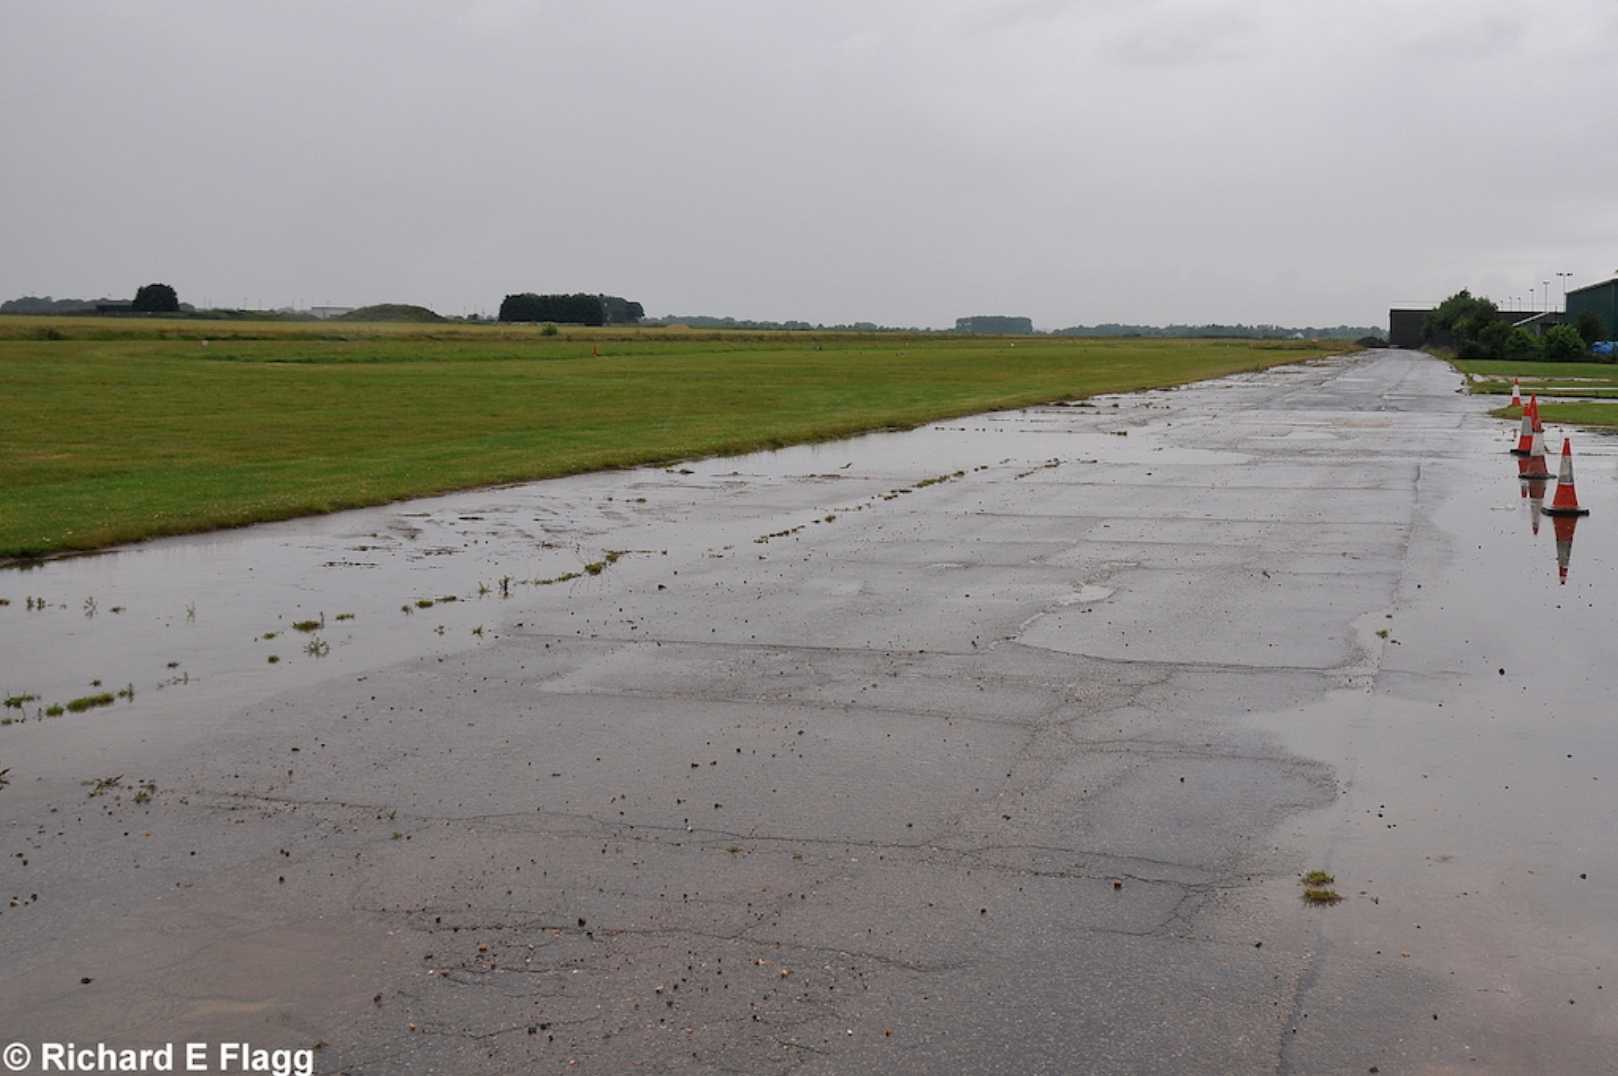 003Taxiway. Looking west from near the Hangar - 6 July 2014.png